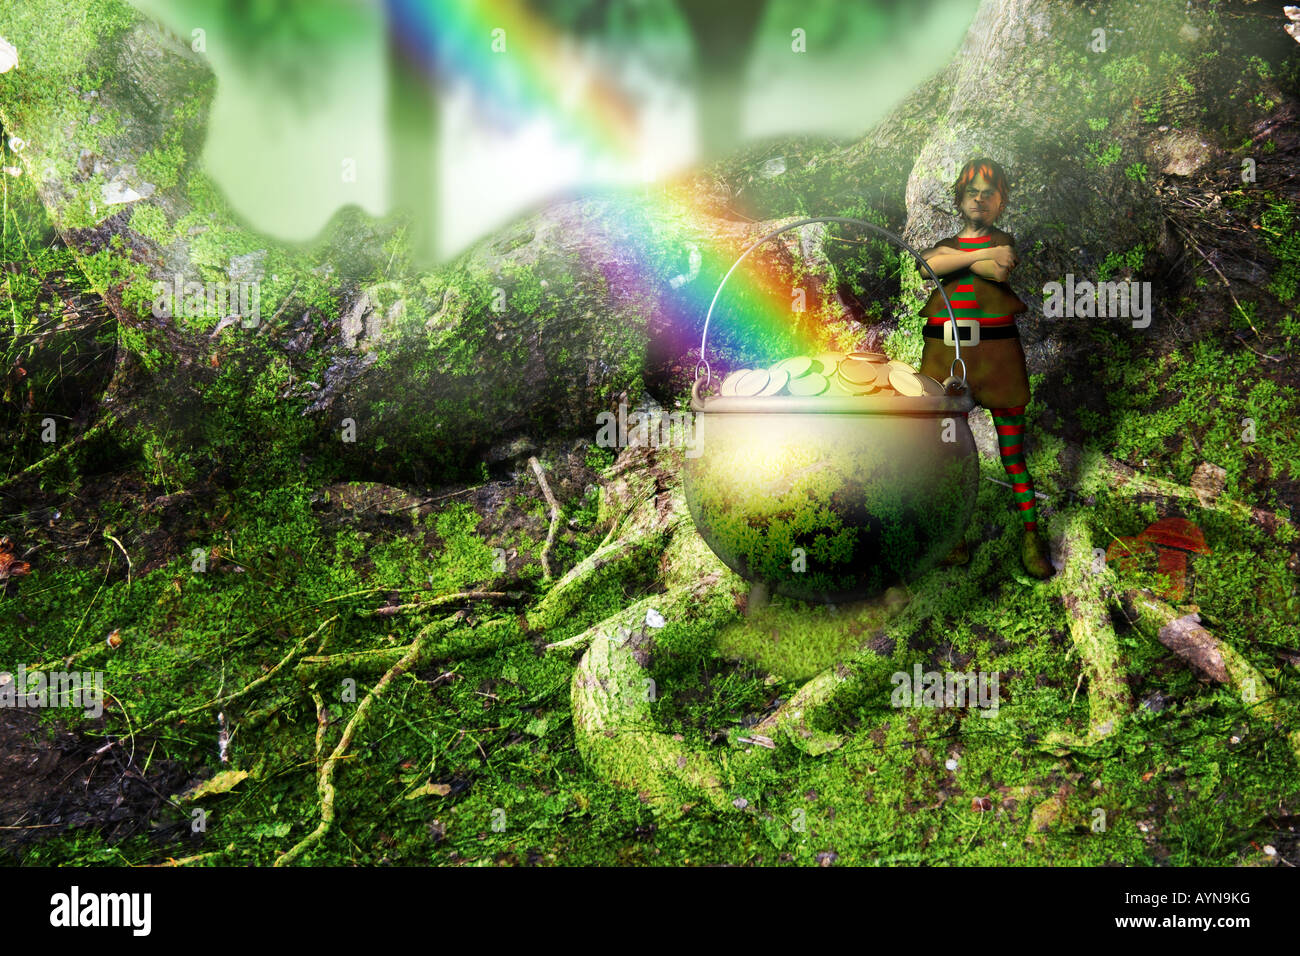 leprechaun with a pot of gold at the end of the rainbow stock